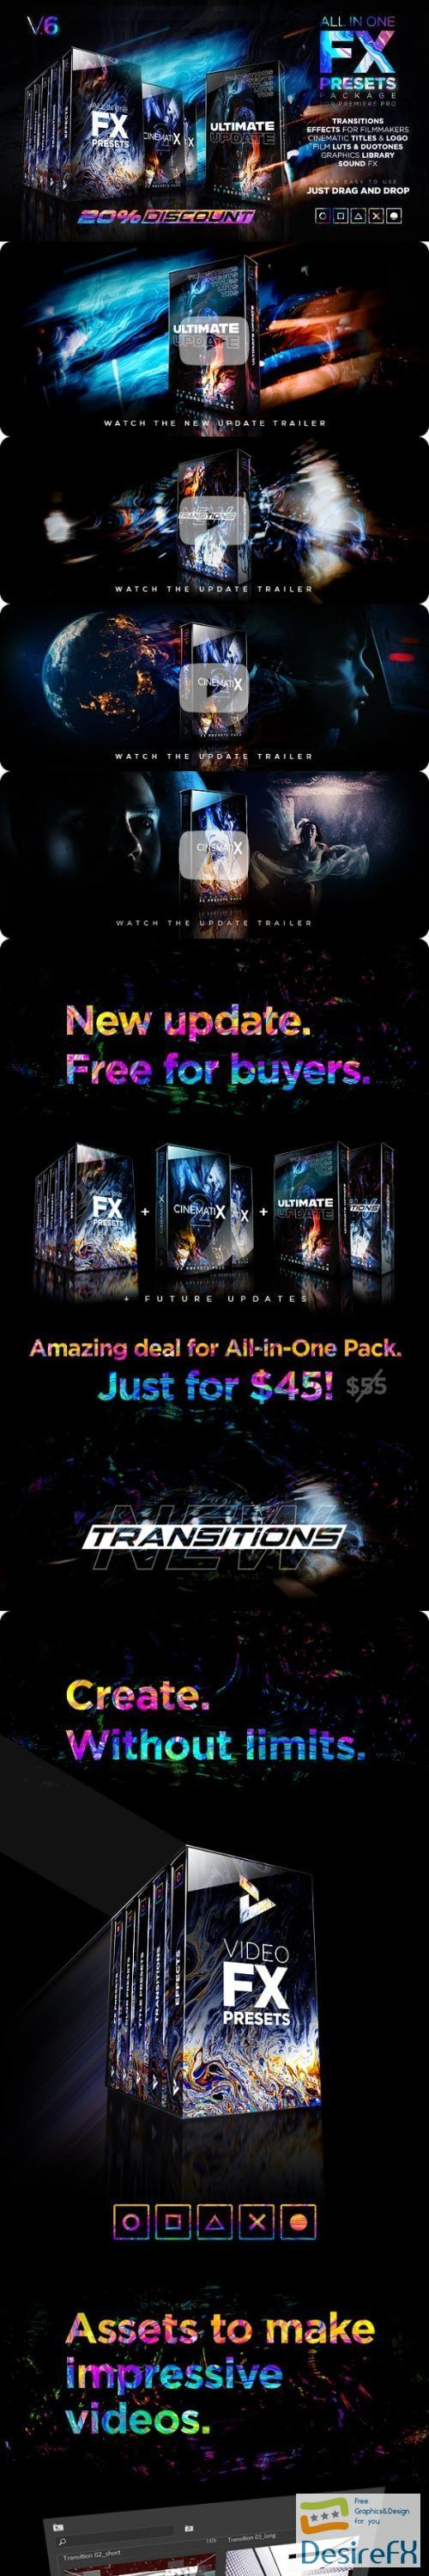 Videohive Presets Pack for Premiere Pro: Effects, Transitions, Titles, LUTS, Duotones, Sounds V6 24028073 - Premiere Pro Templates